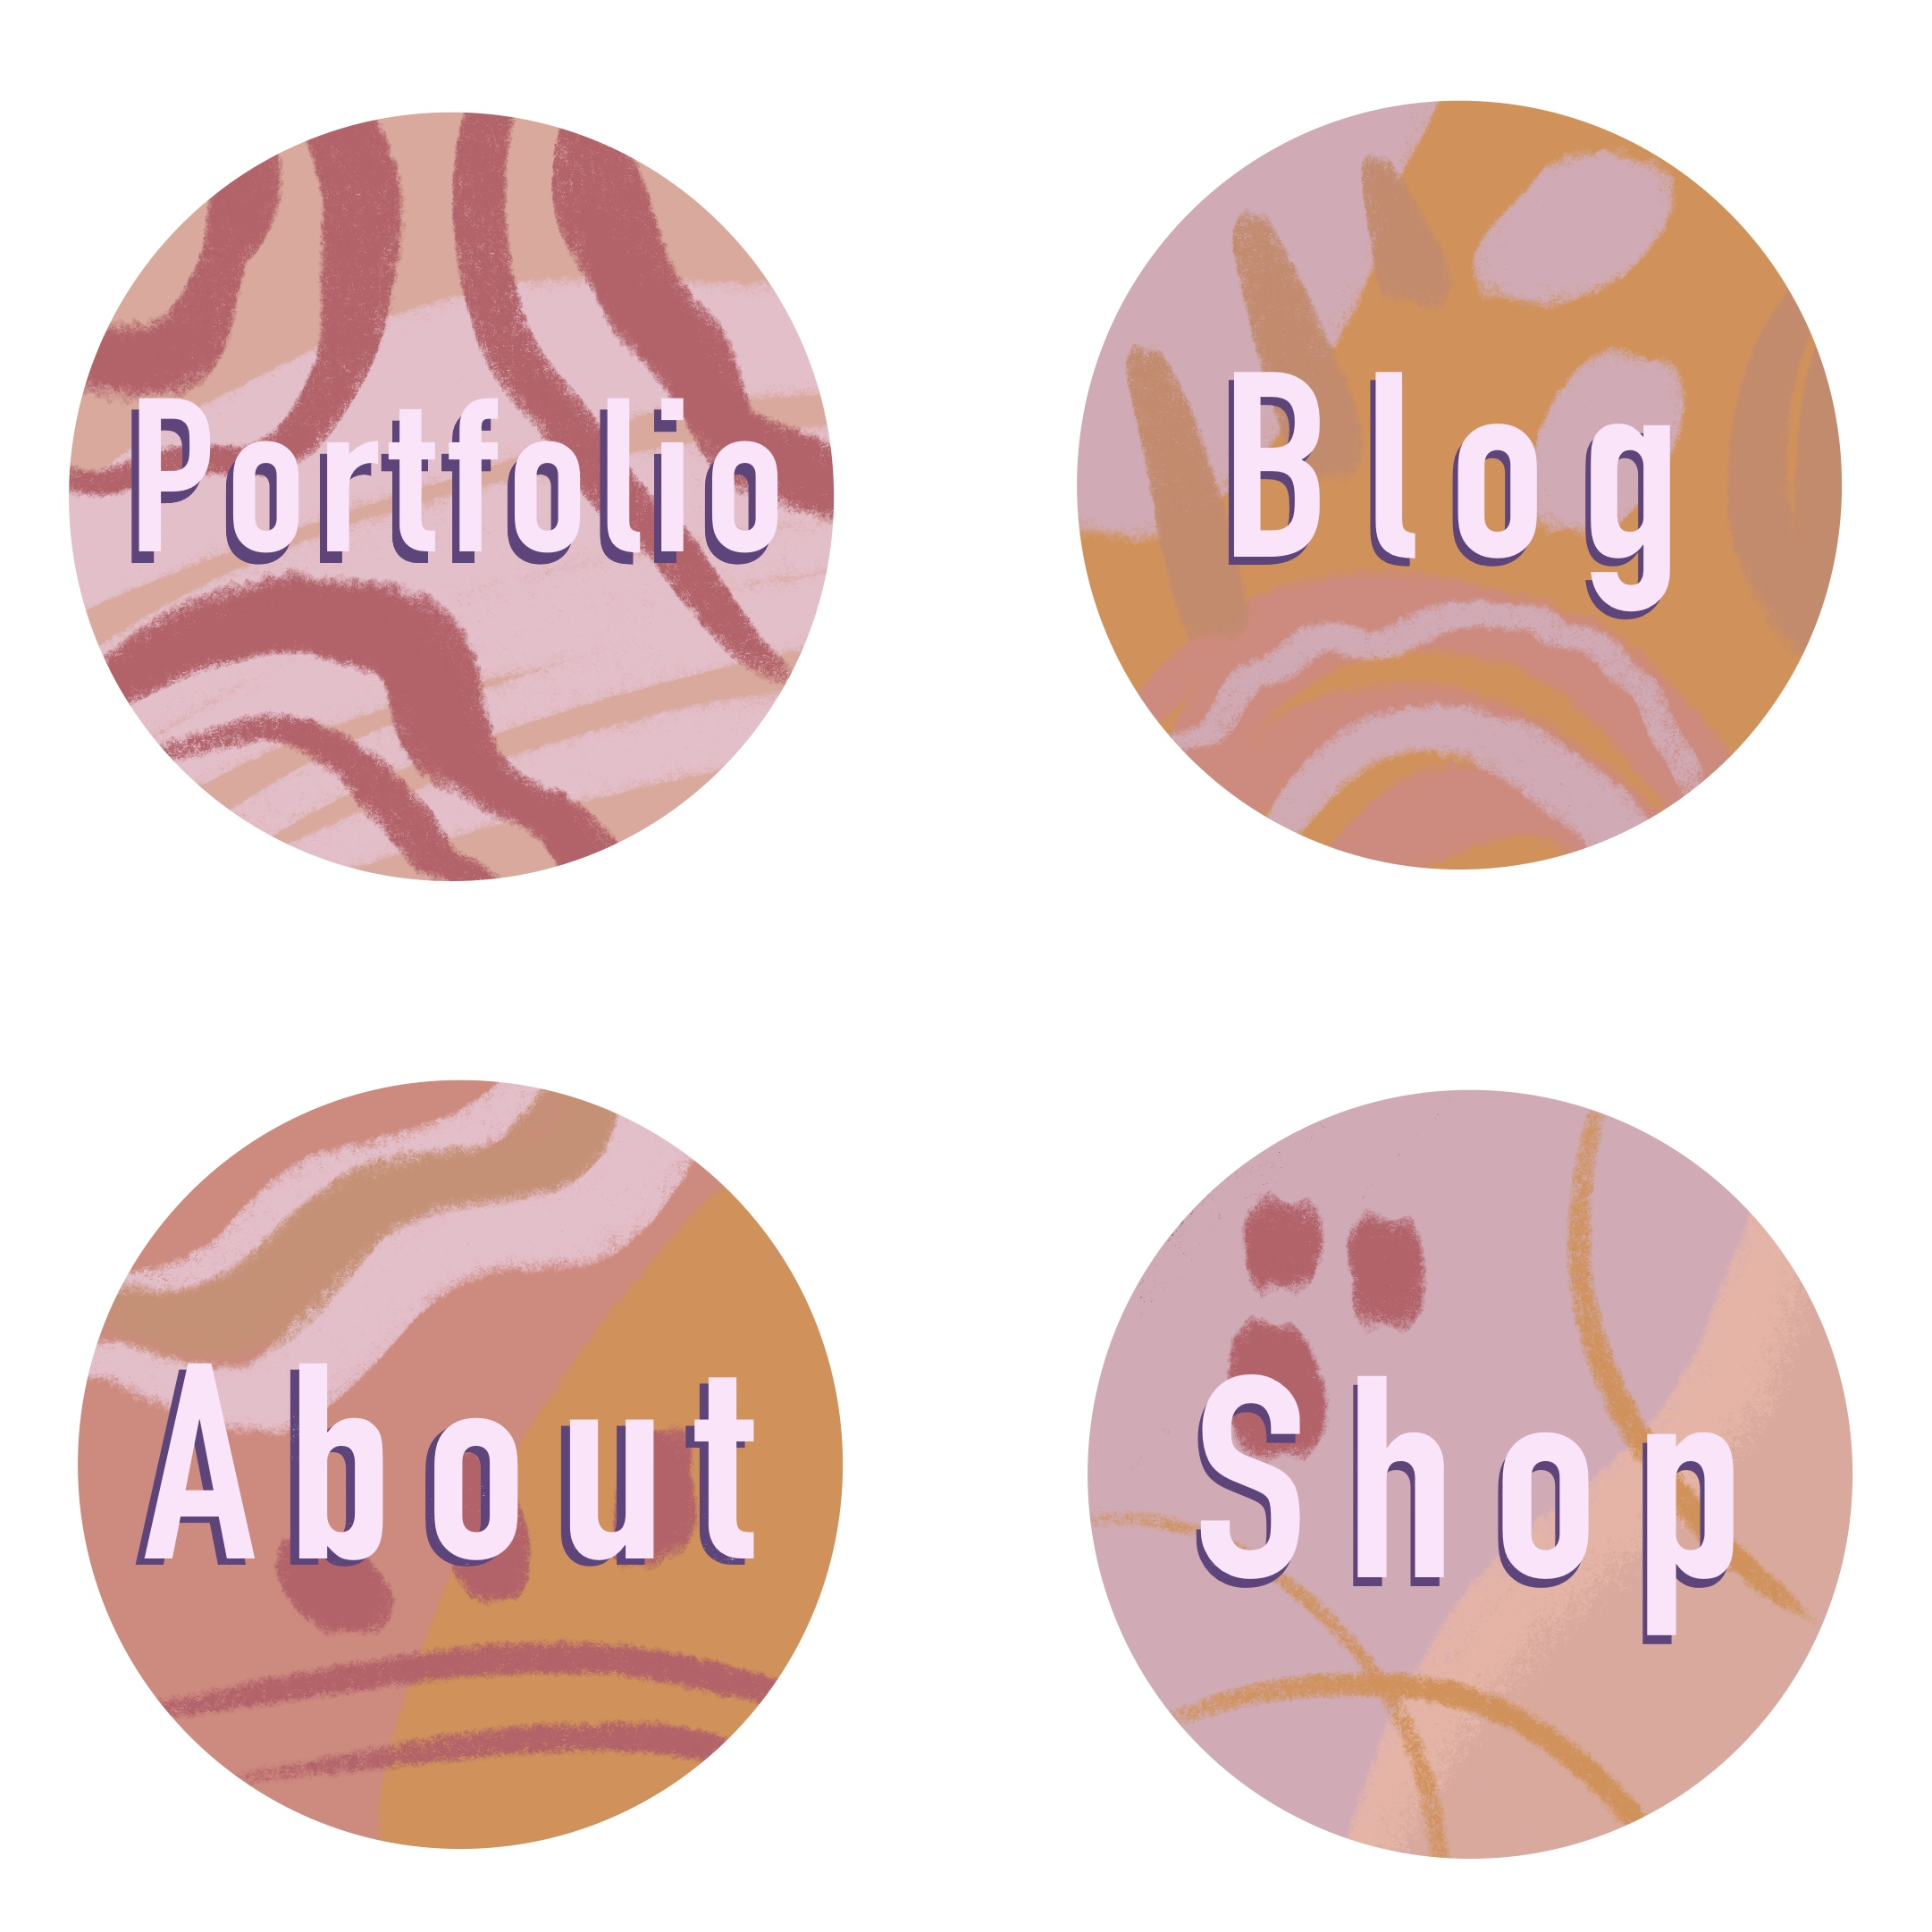 well designed icons for website navigation in neutral pinks and browns